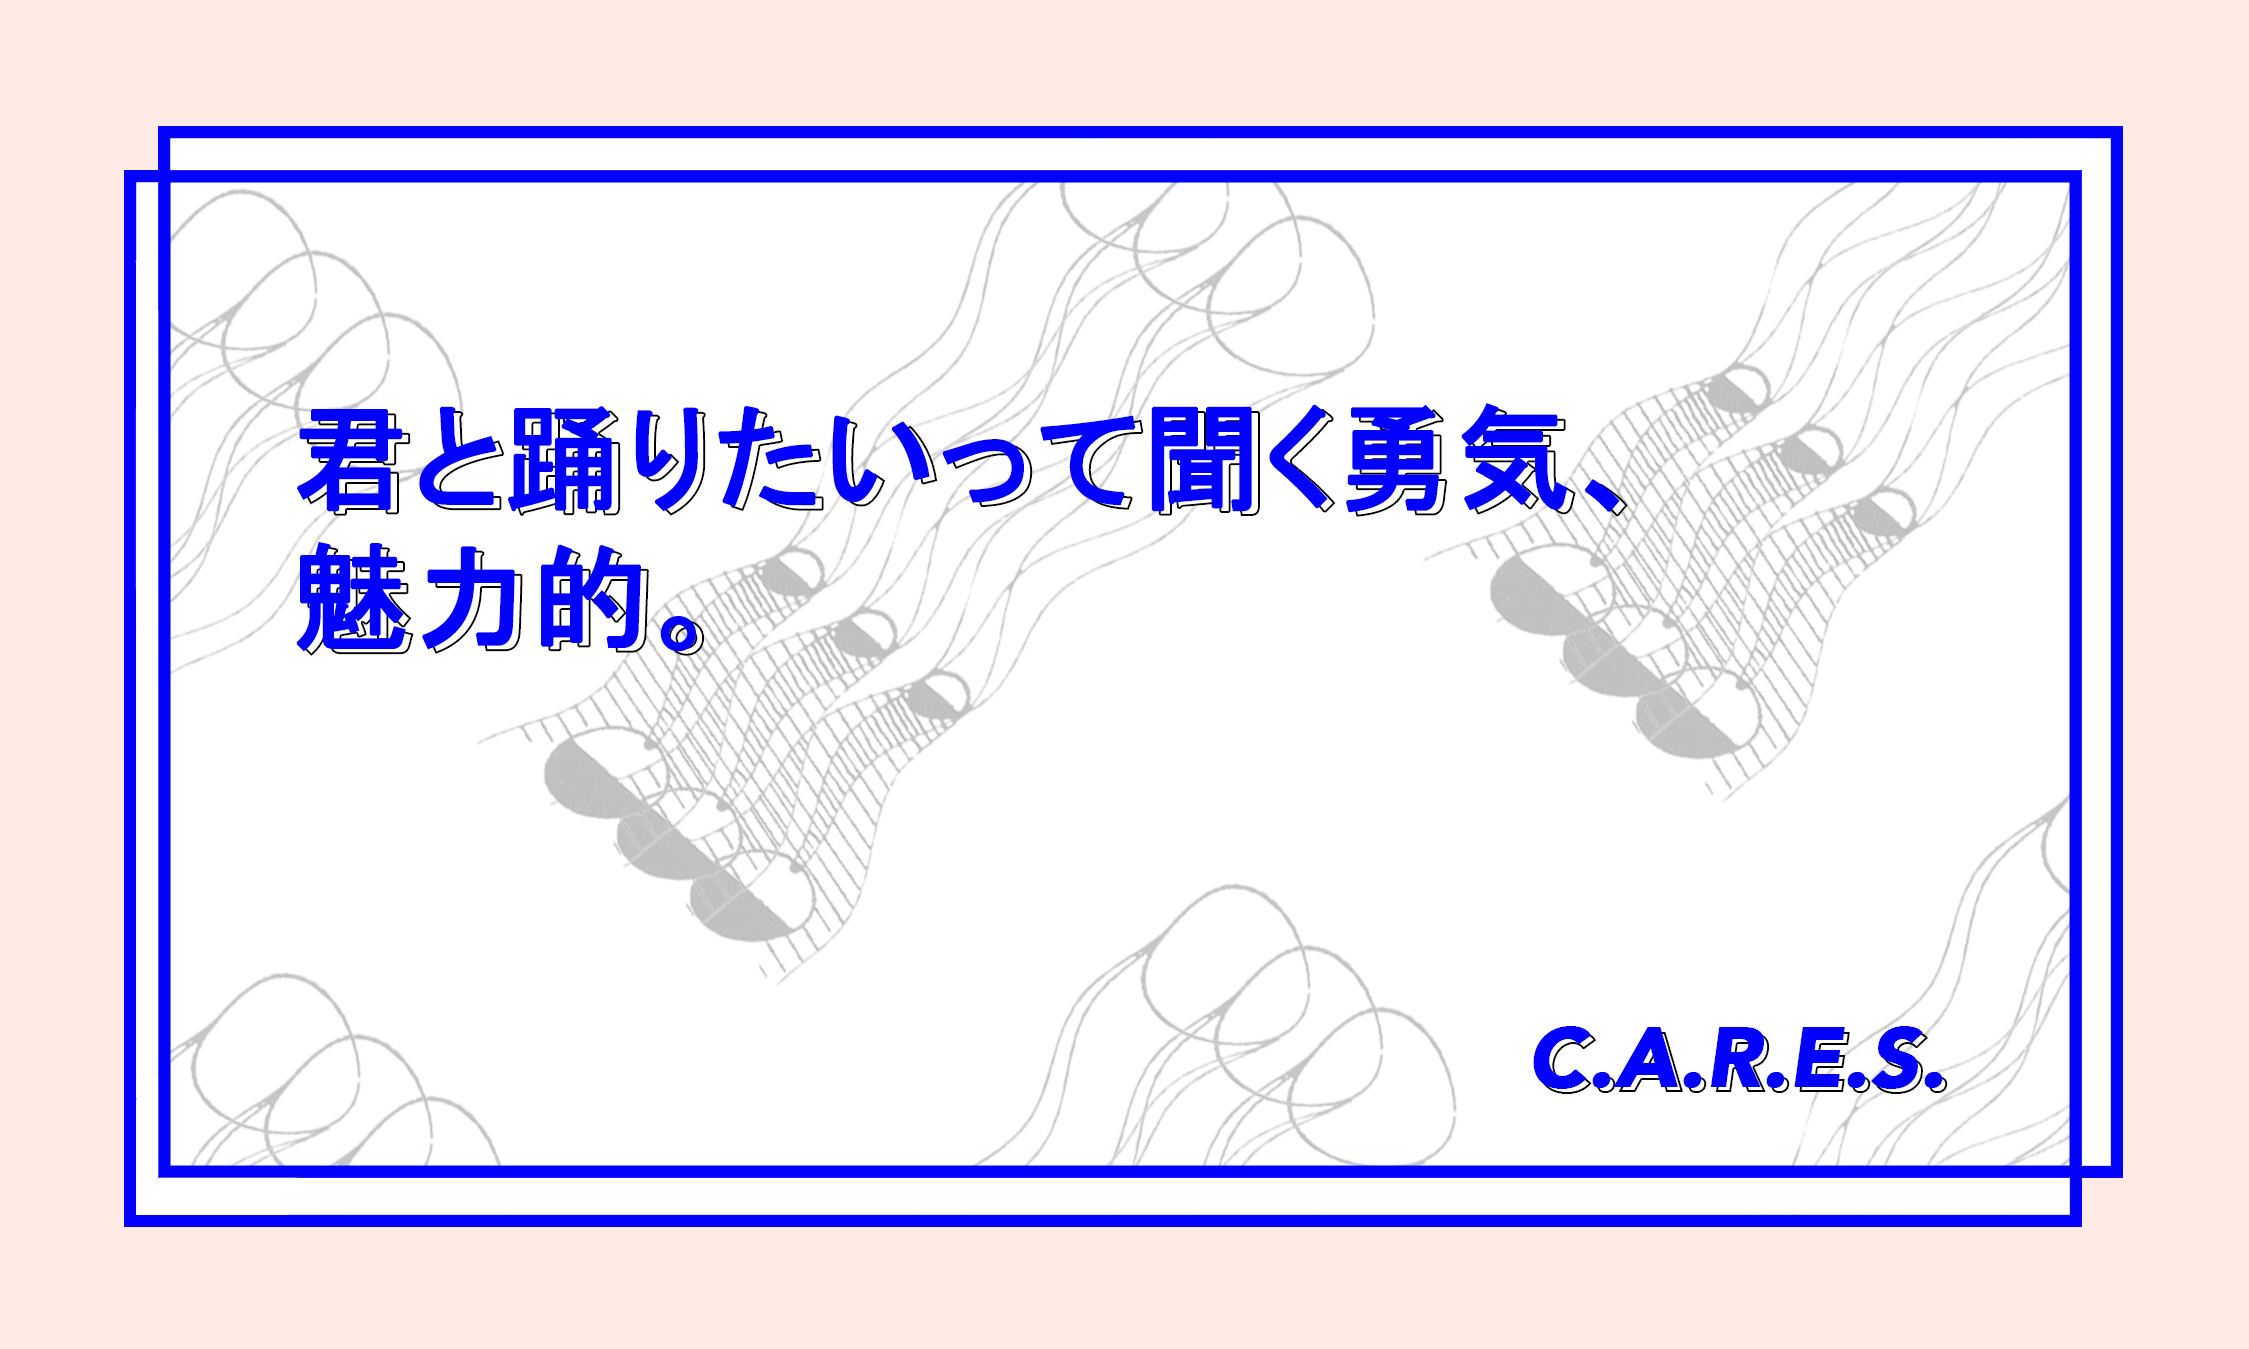 card_front_Japanese.png